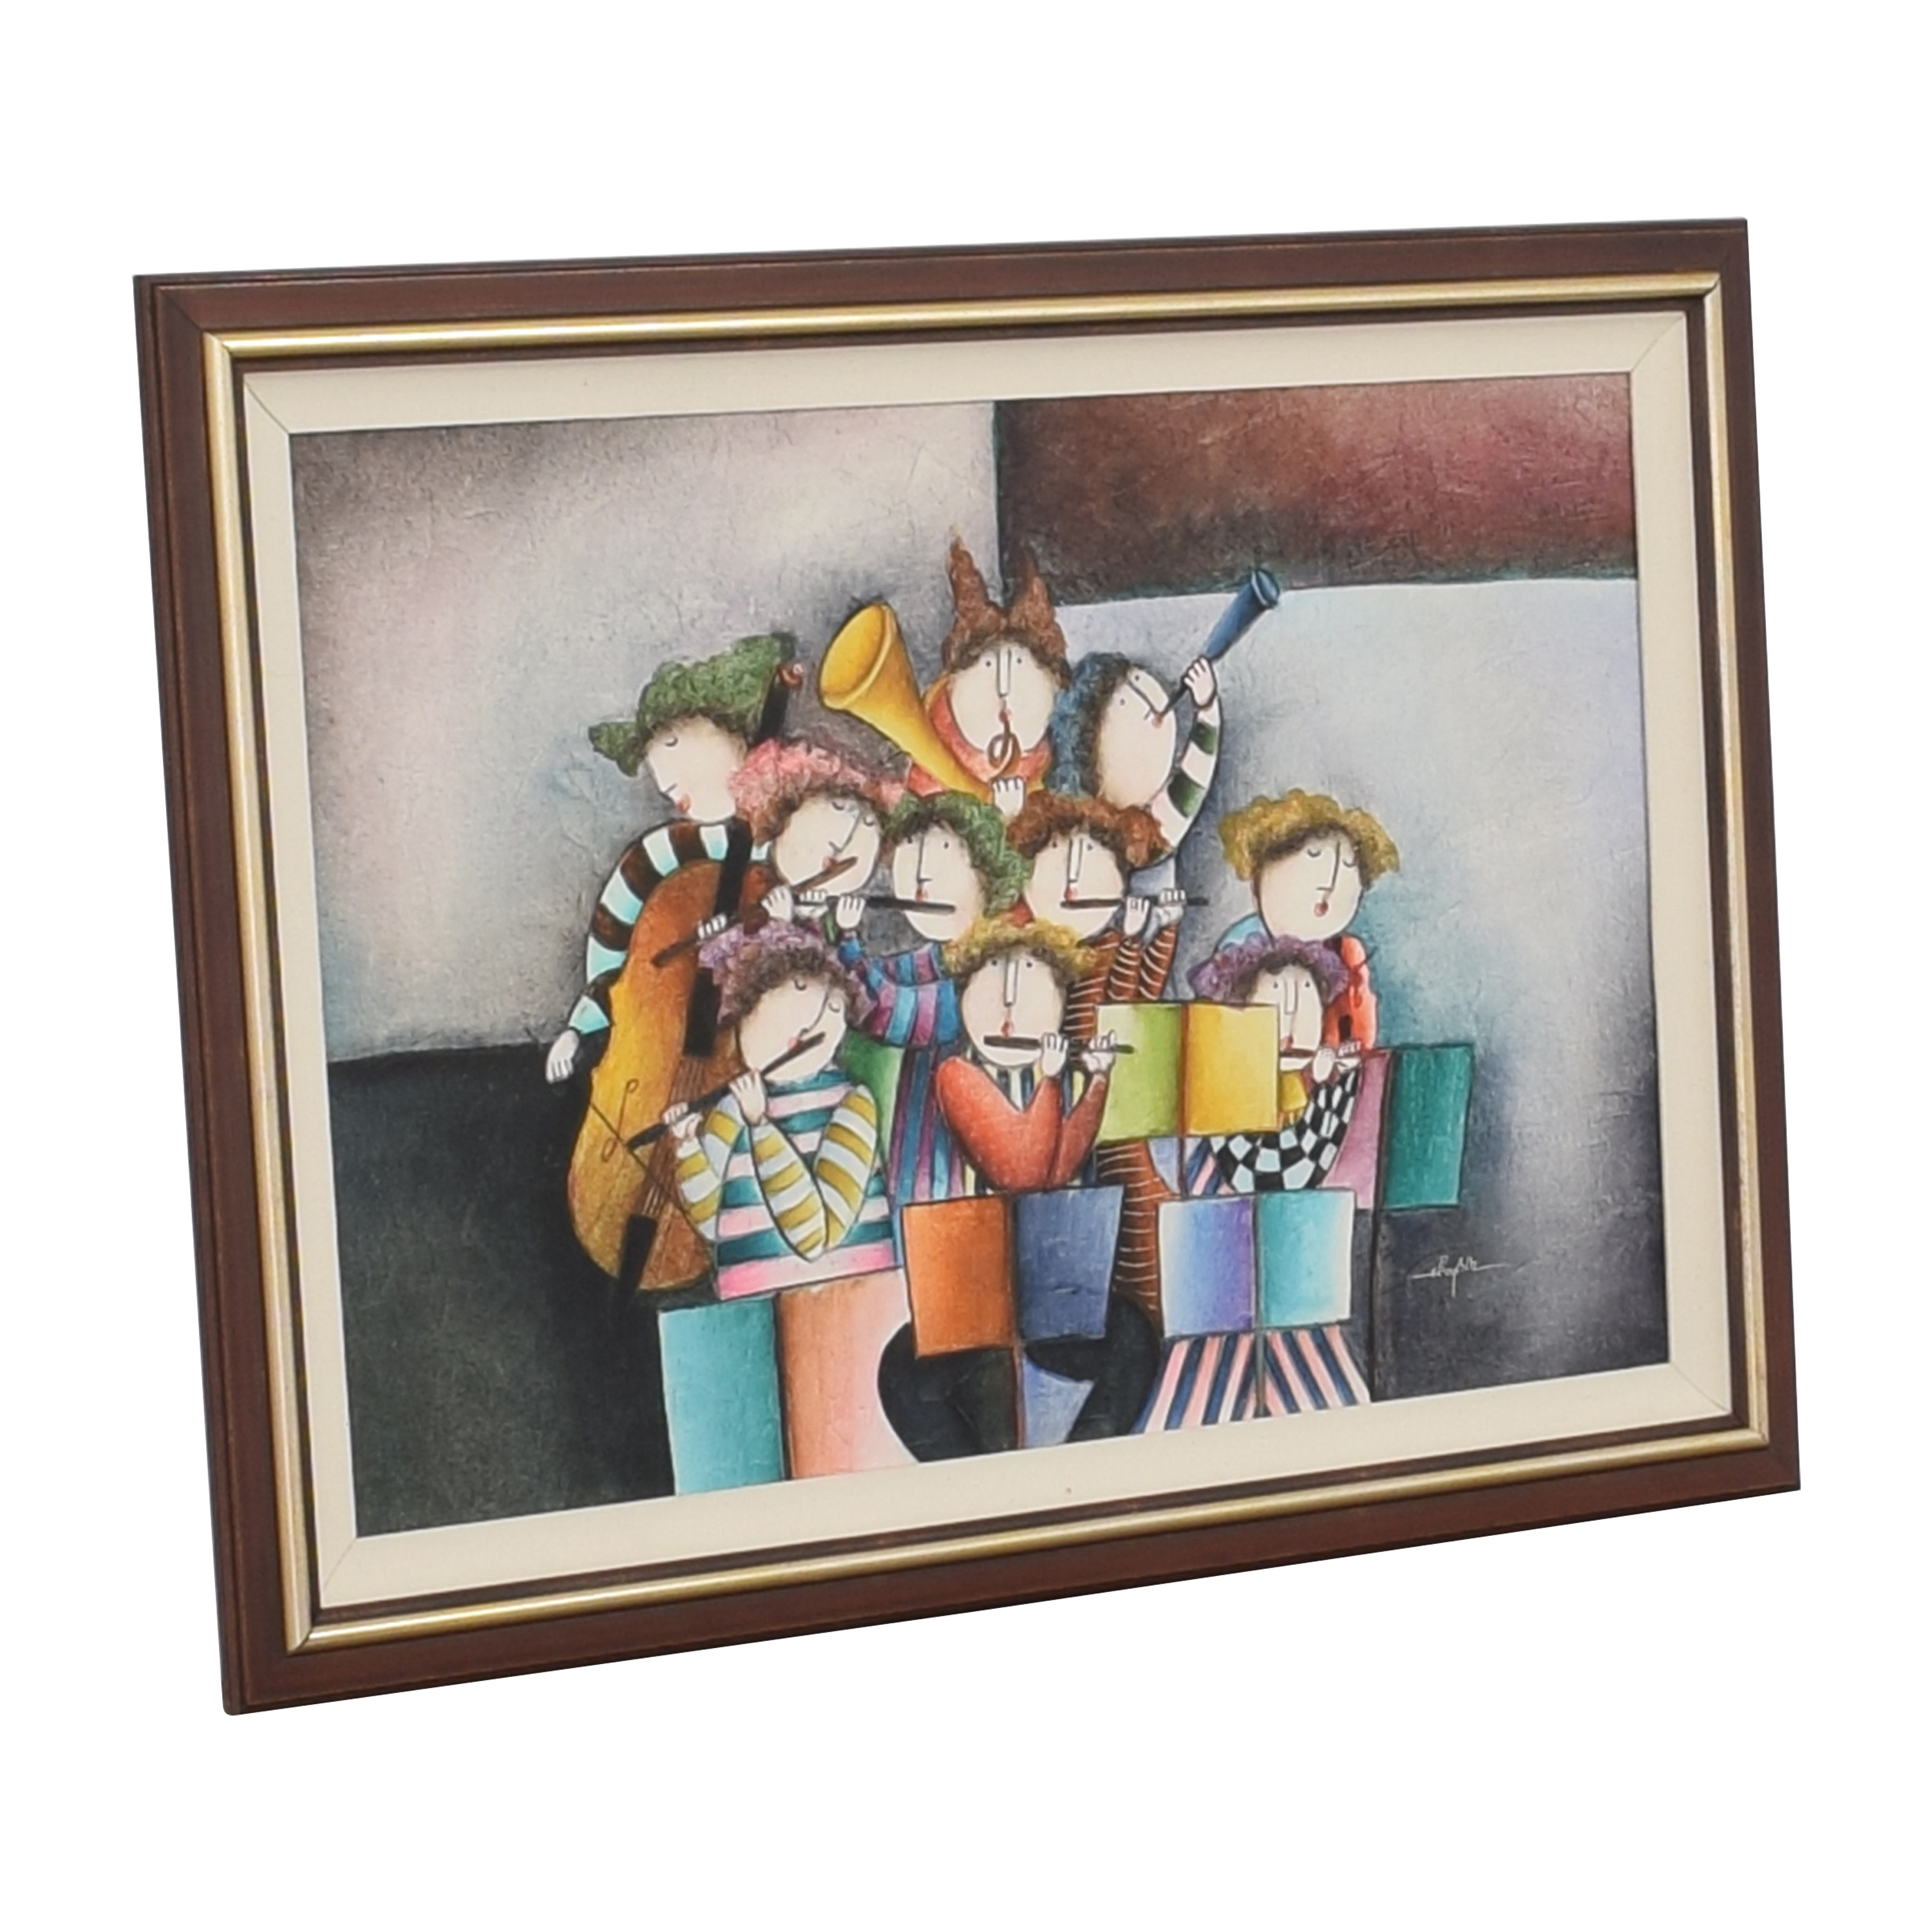 Musical Musicians Playing Instruments Framed Wall Art dimensions